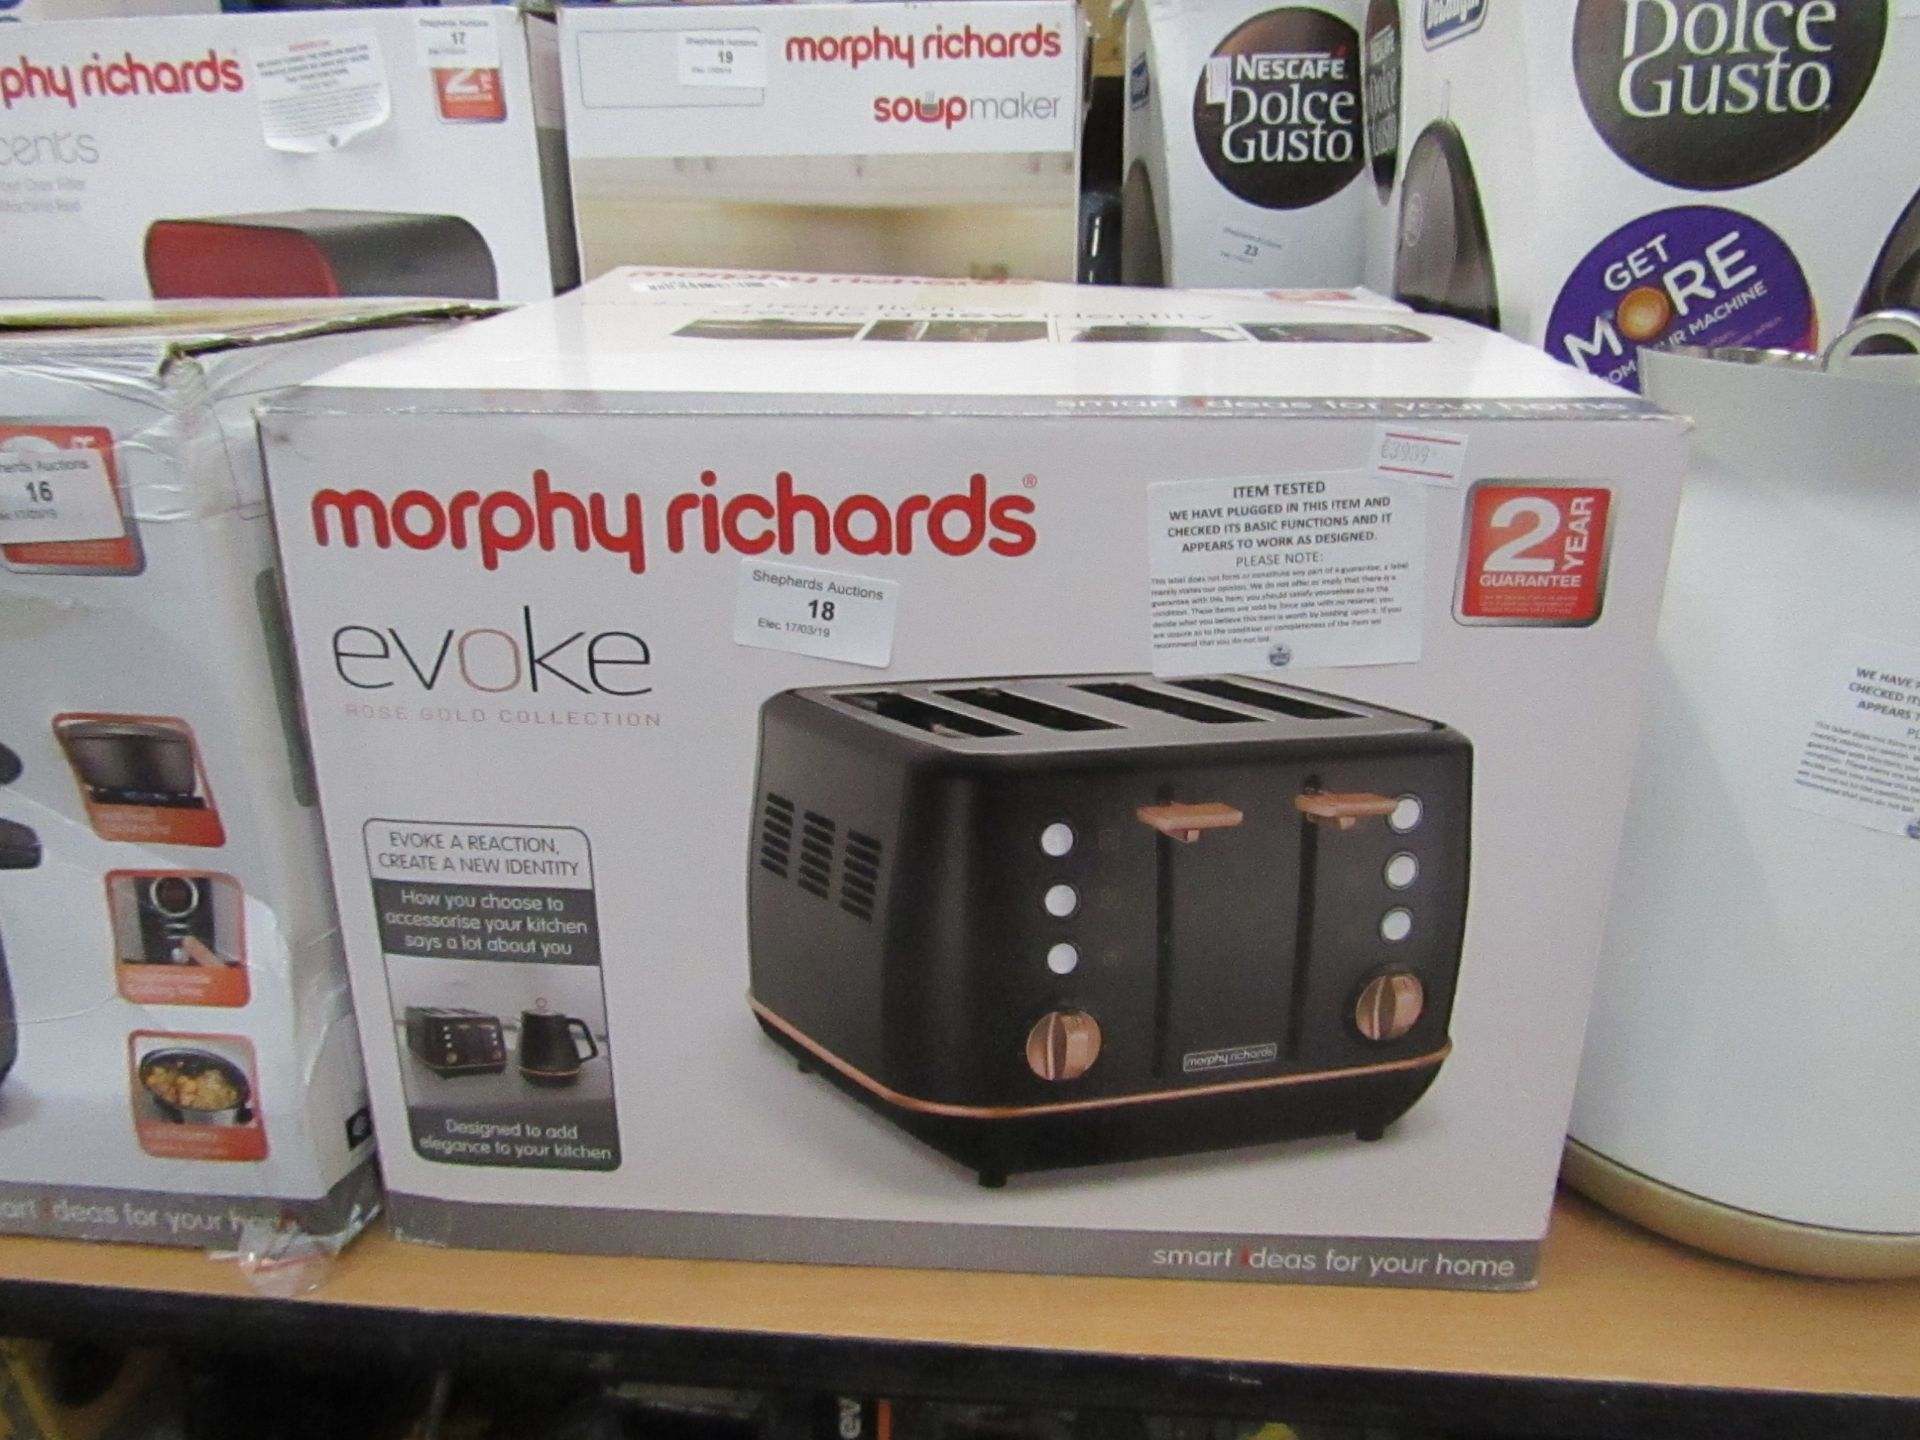 Lot 18 - Morphy Richards 4 sliced toaster, tested working and boxed